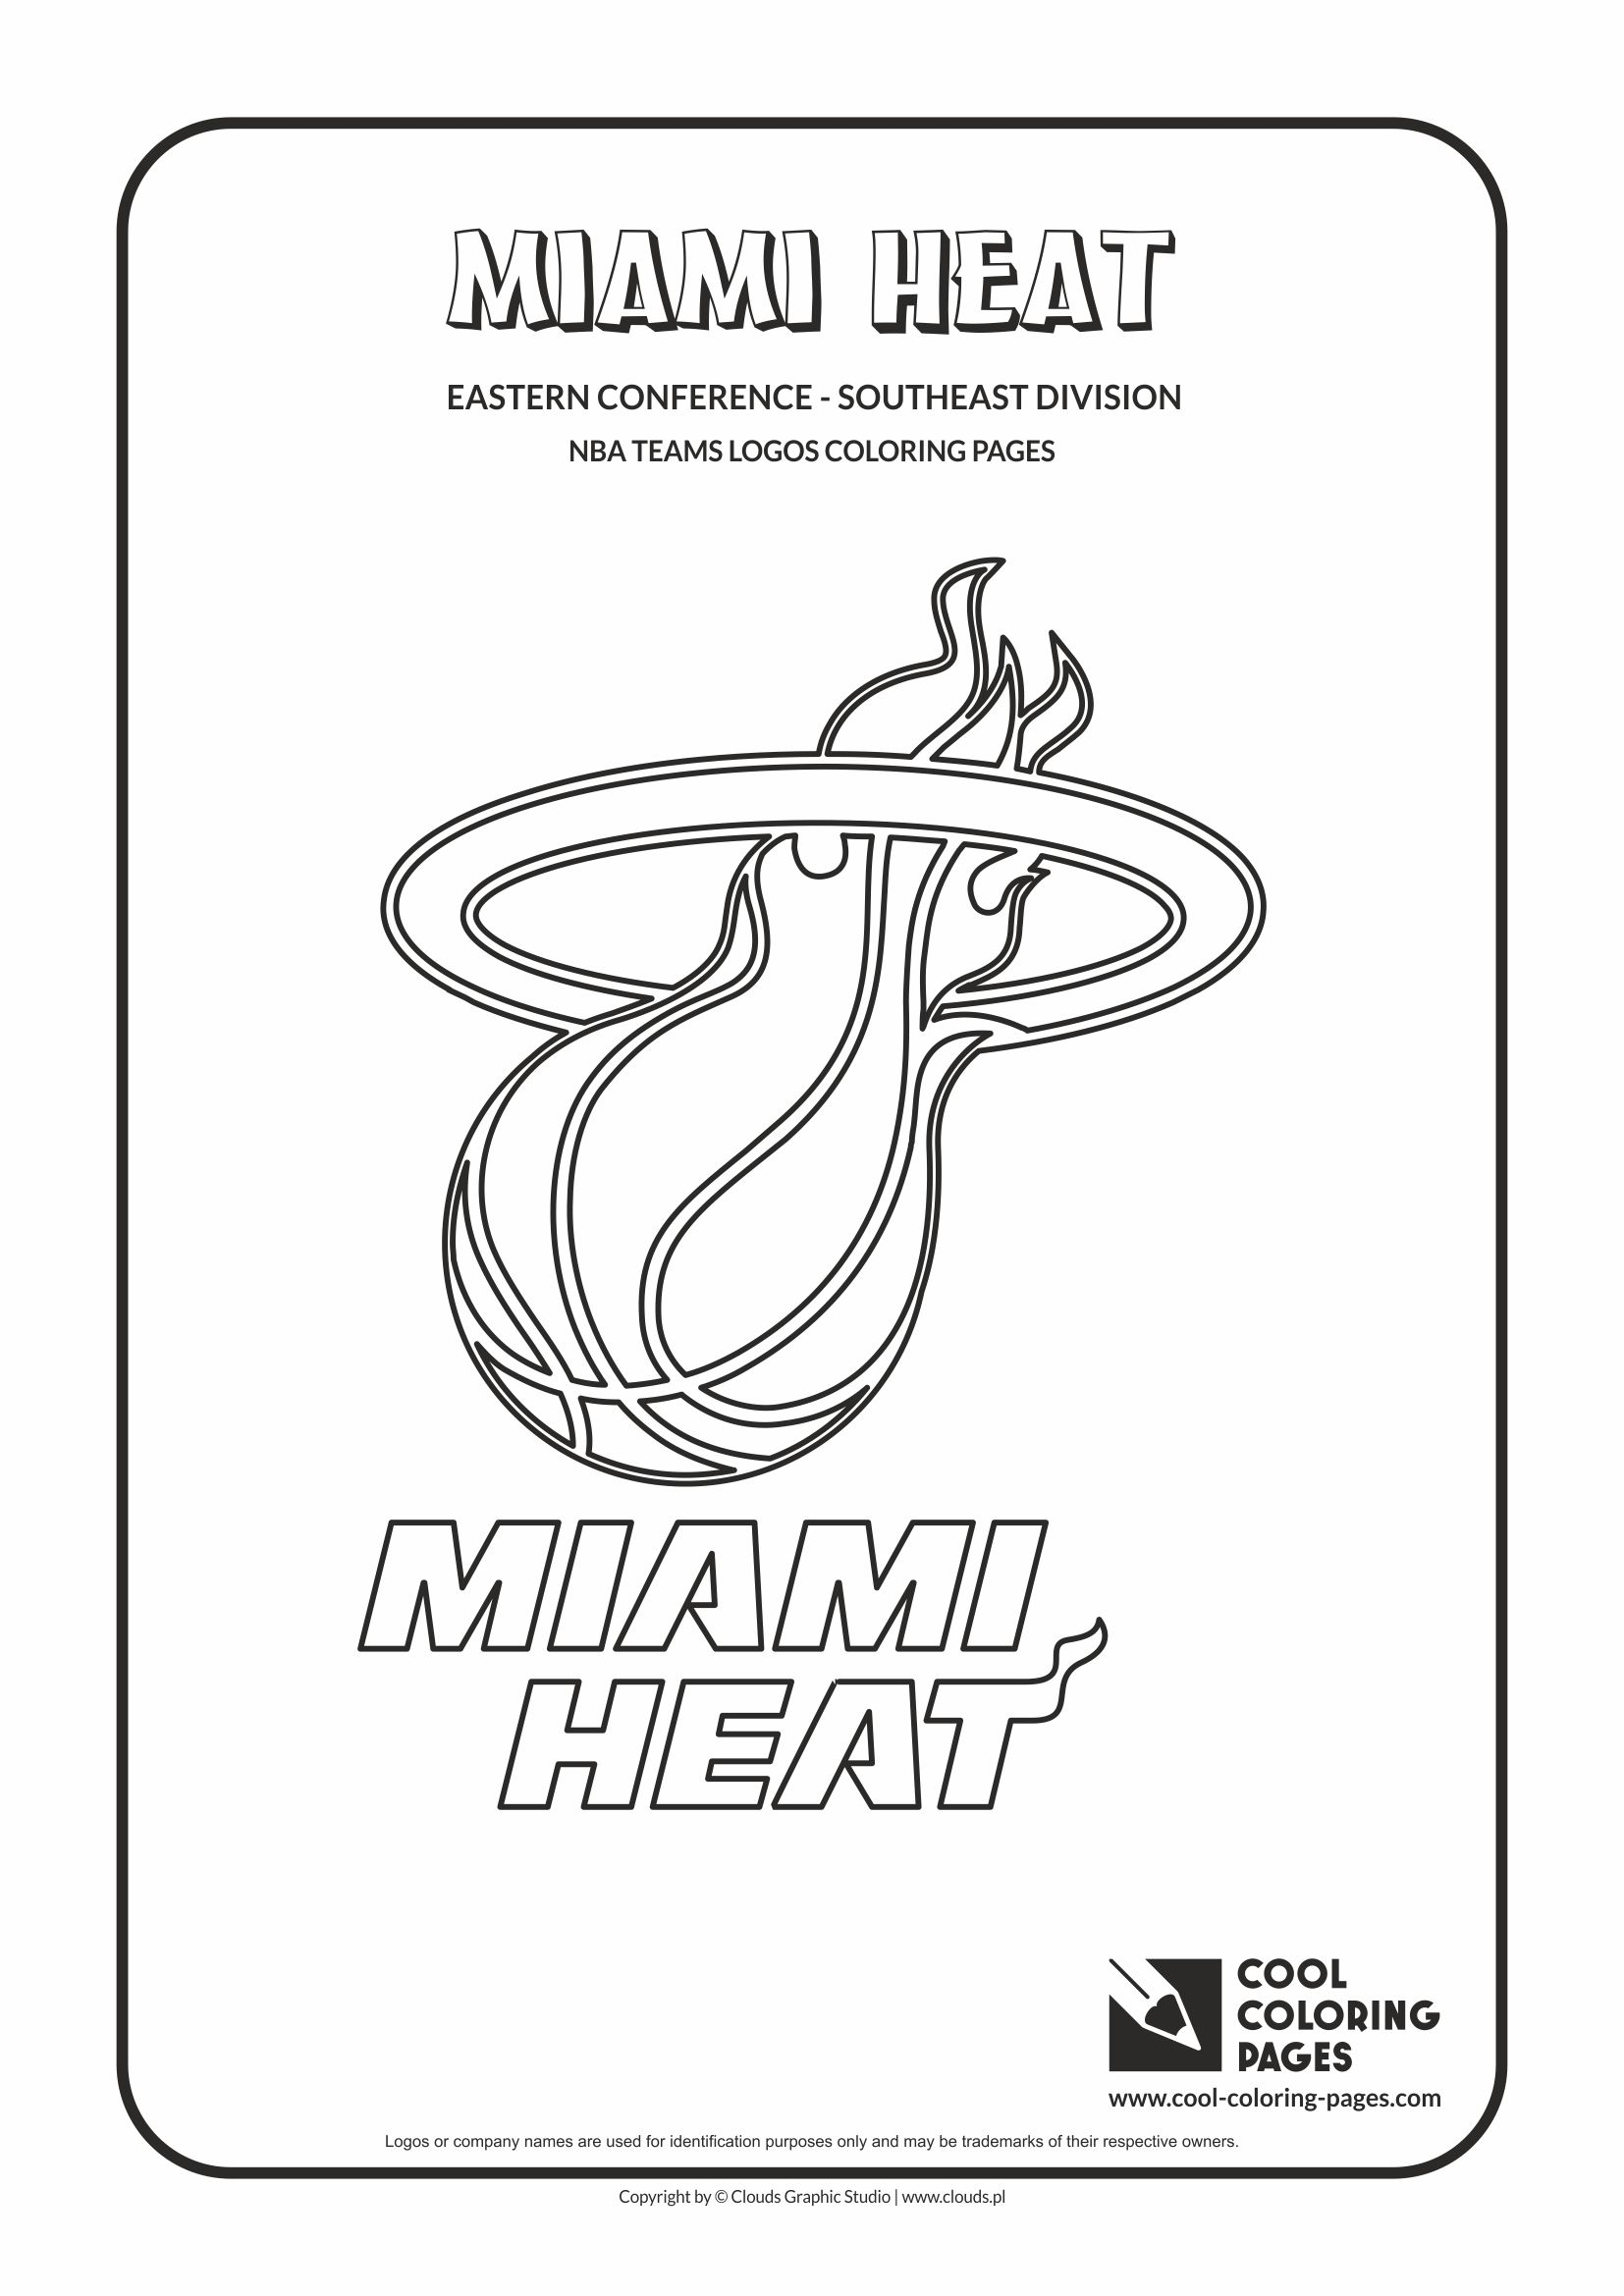 Cool coloring pages nba teams logos coloring pages cool for Miami heat coloring pages